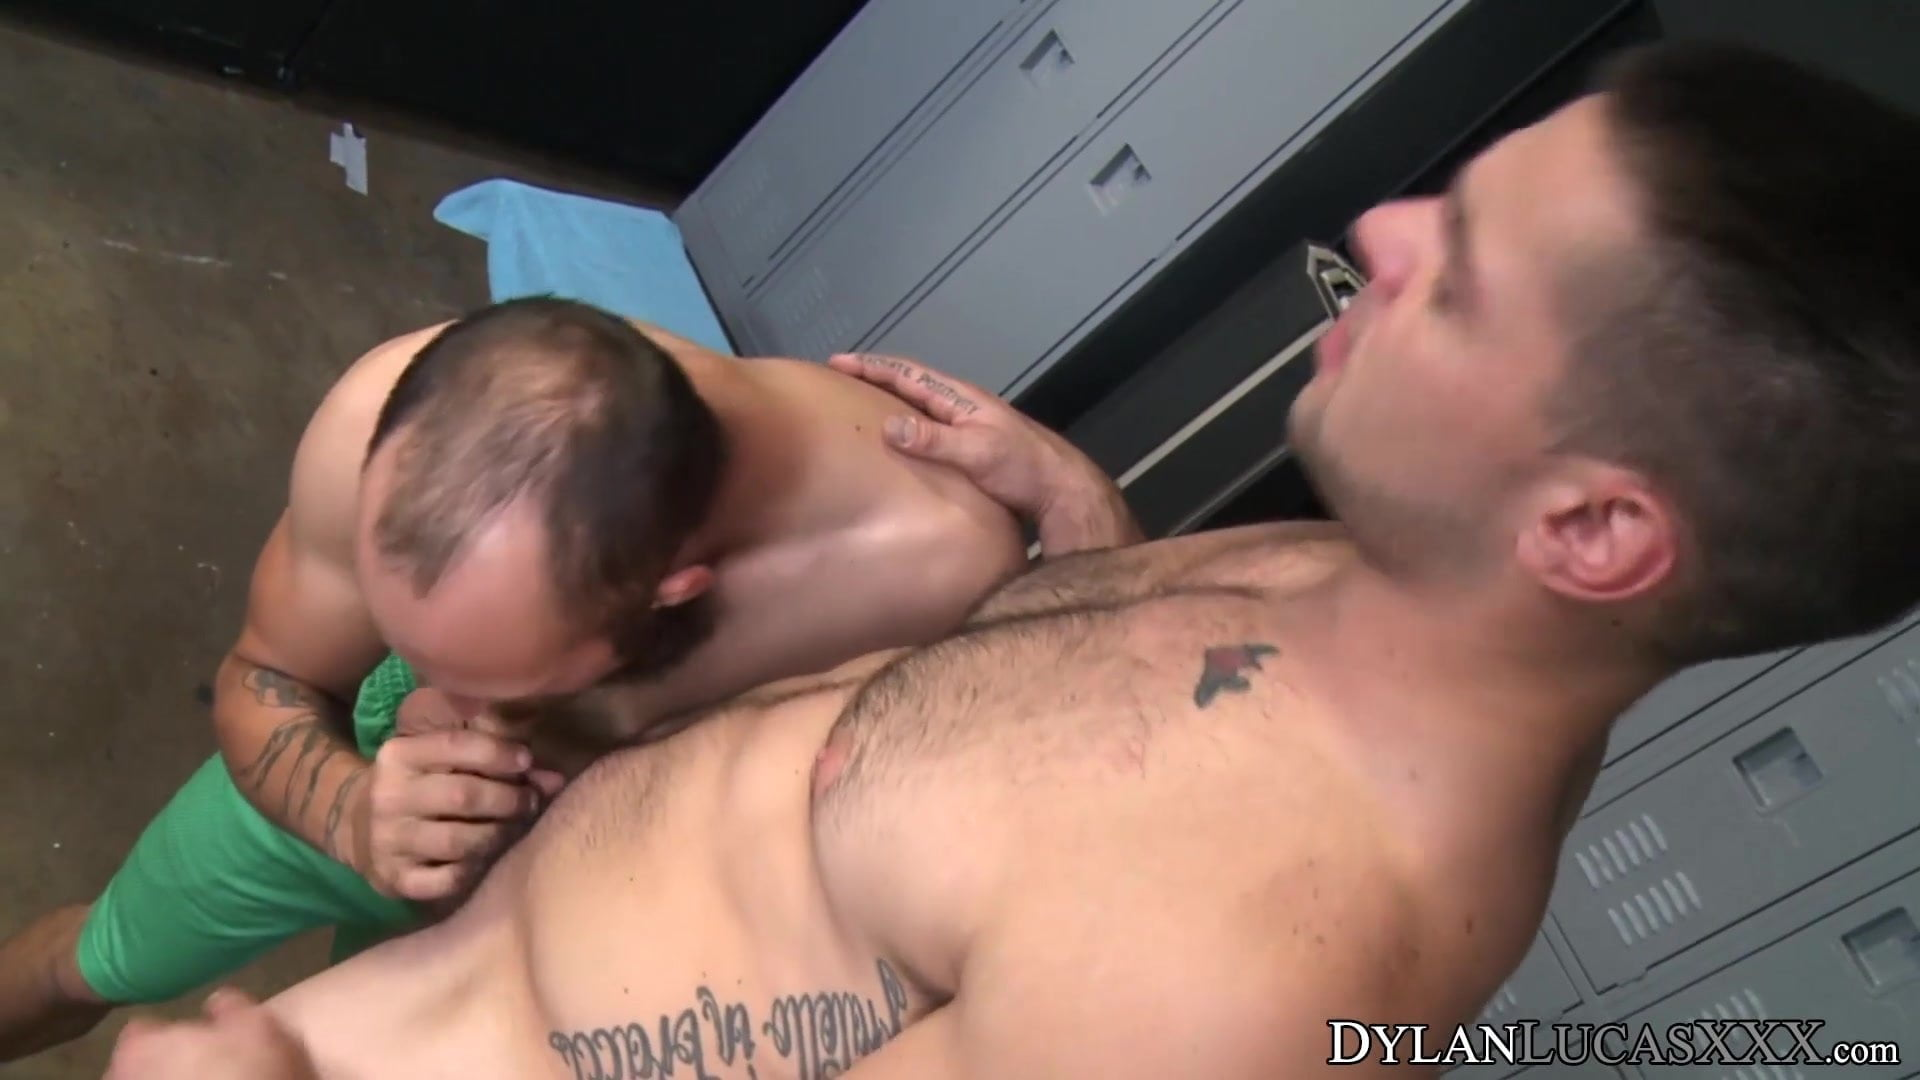 Wild anal doggystyle within the locker room with good-looking gays